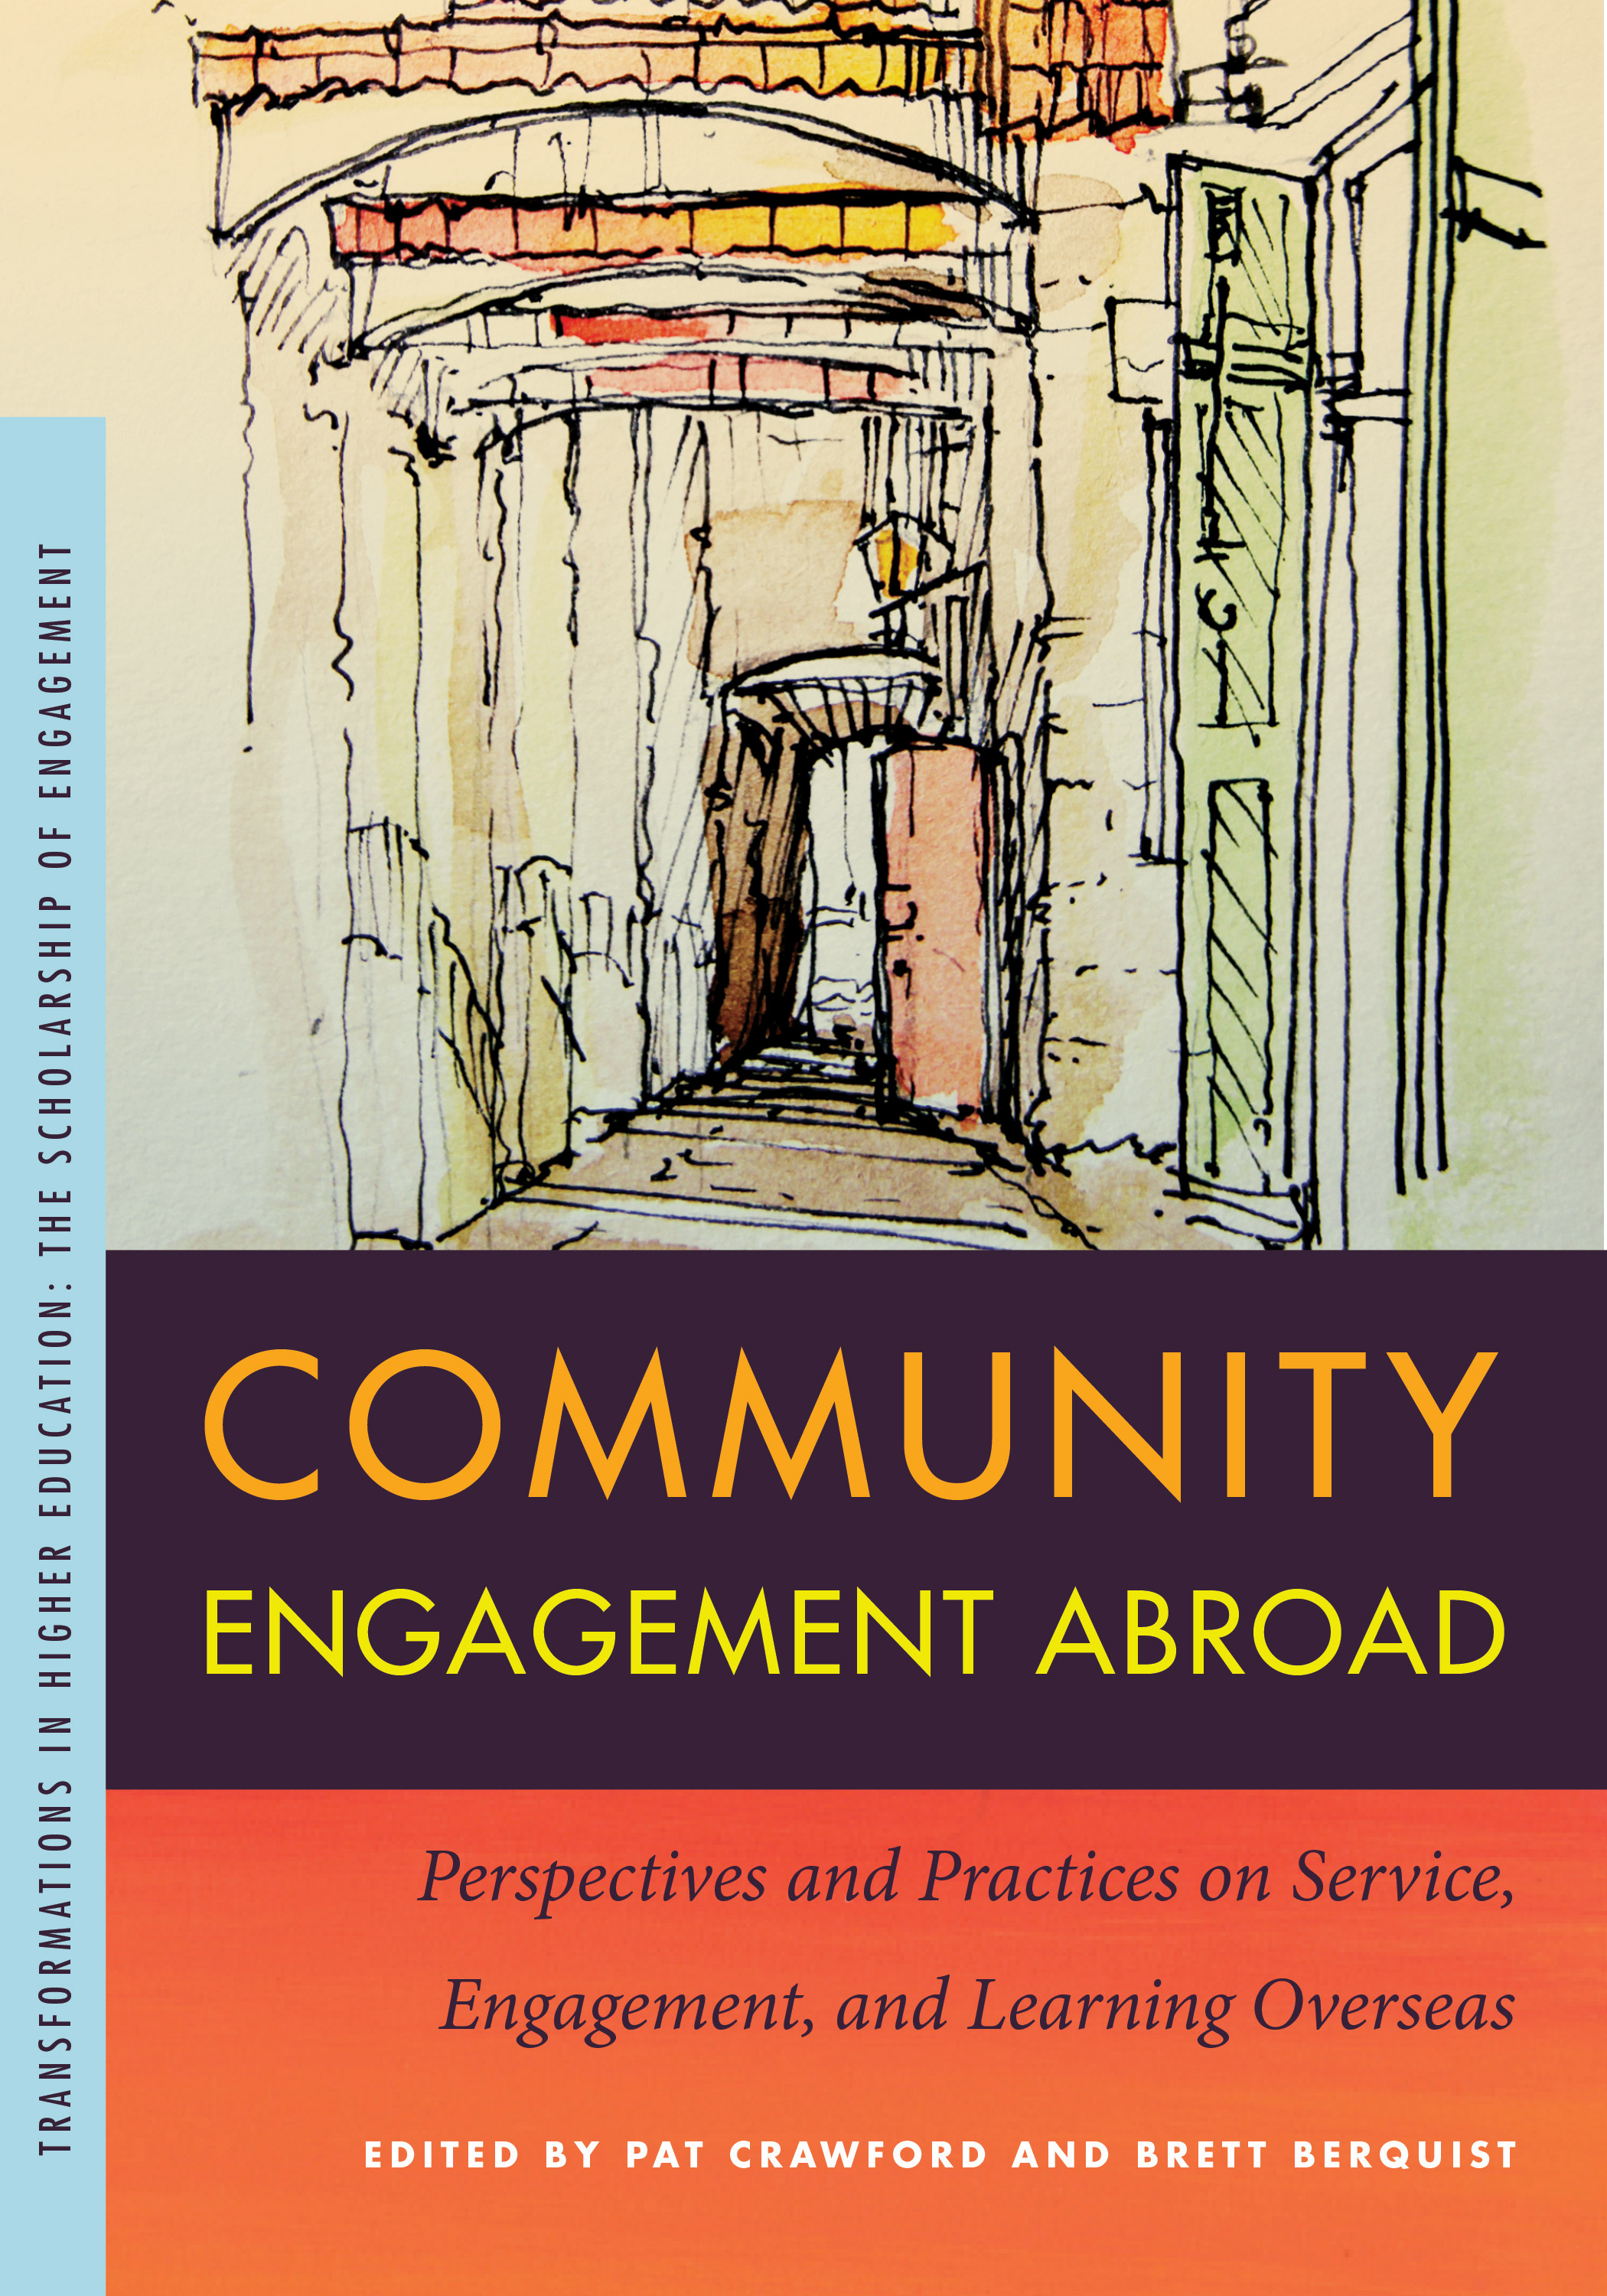 Community Engagement Abroad cover